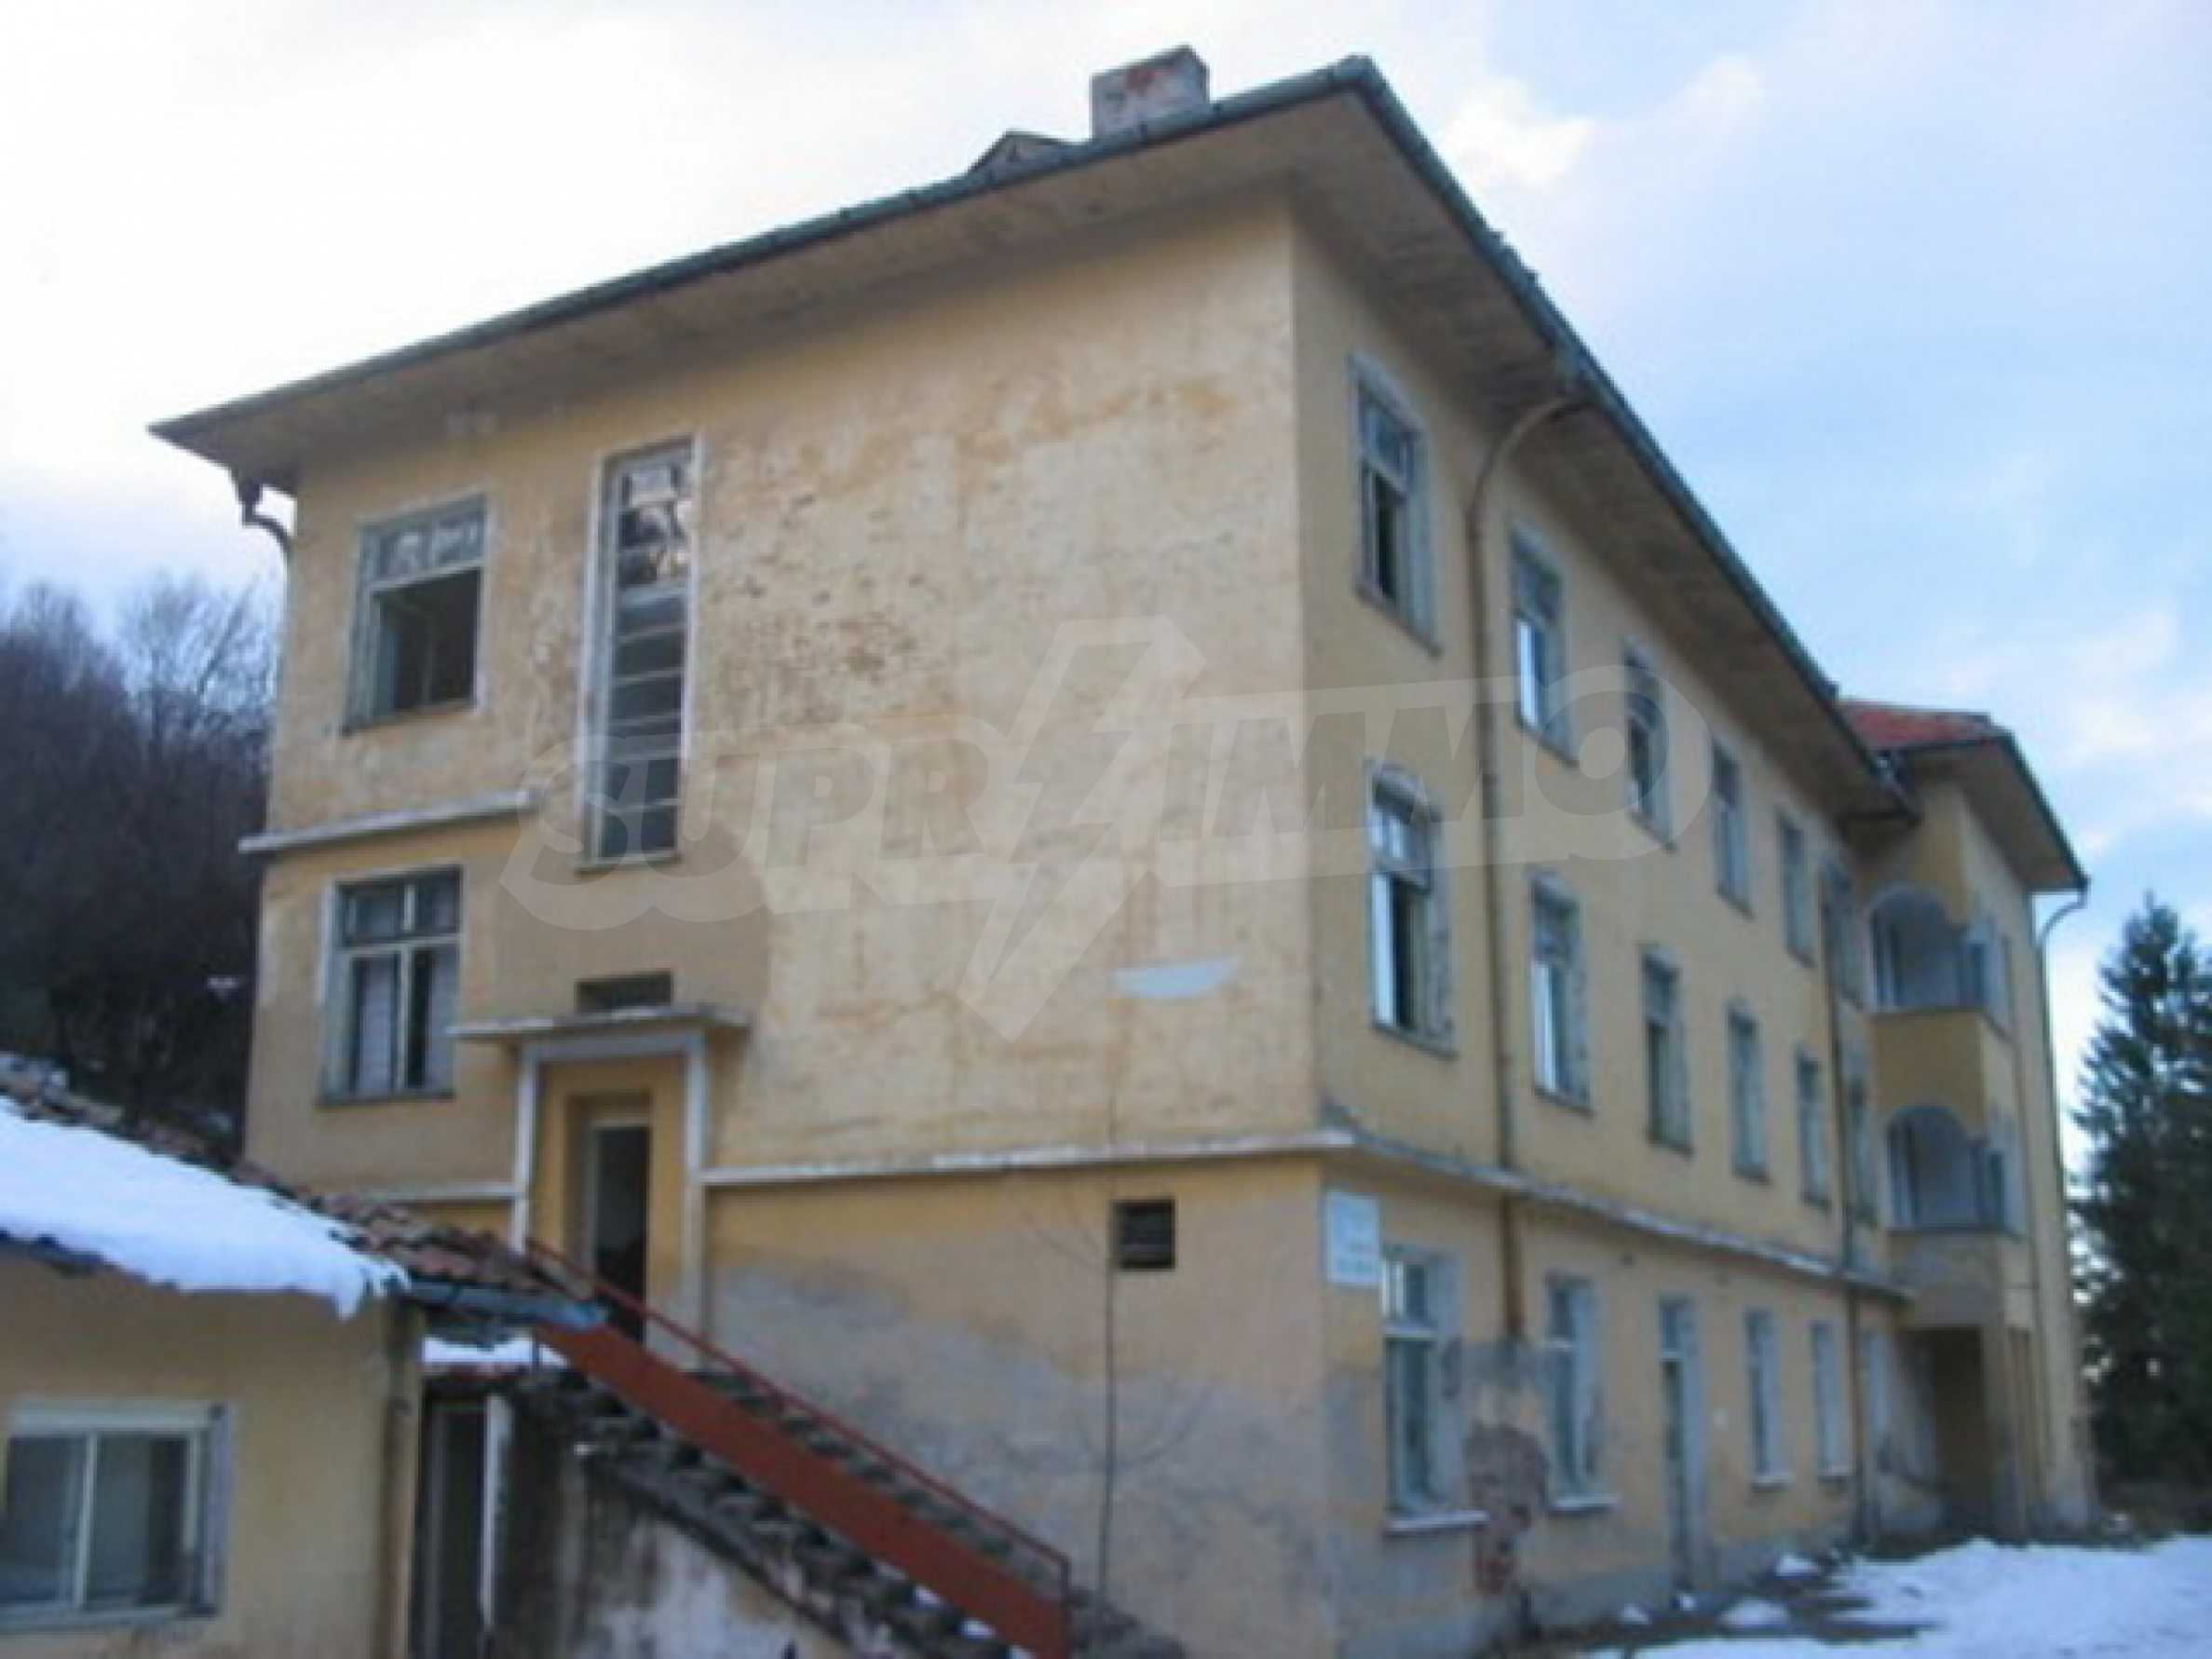 Hotel in need of complete renovation 1